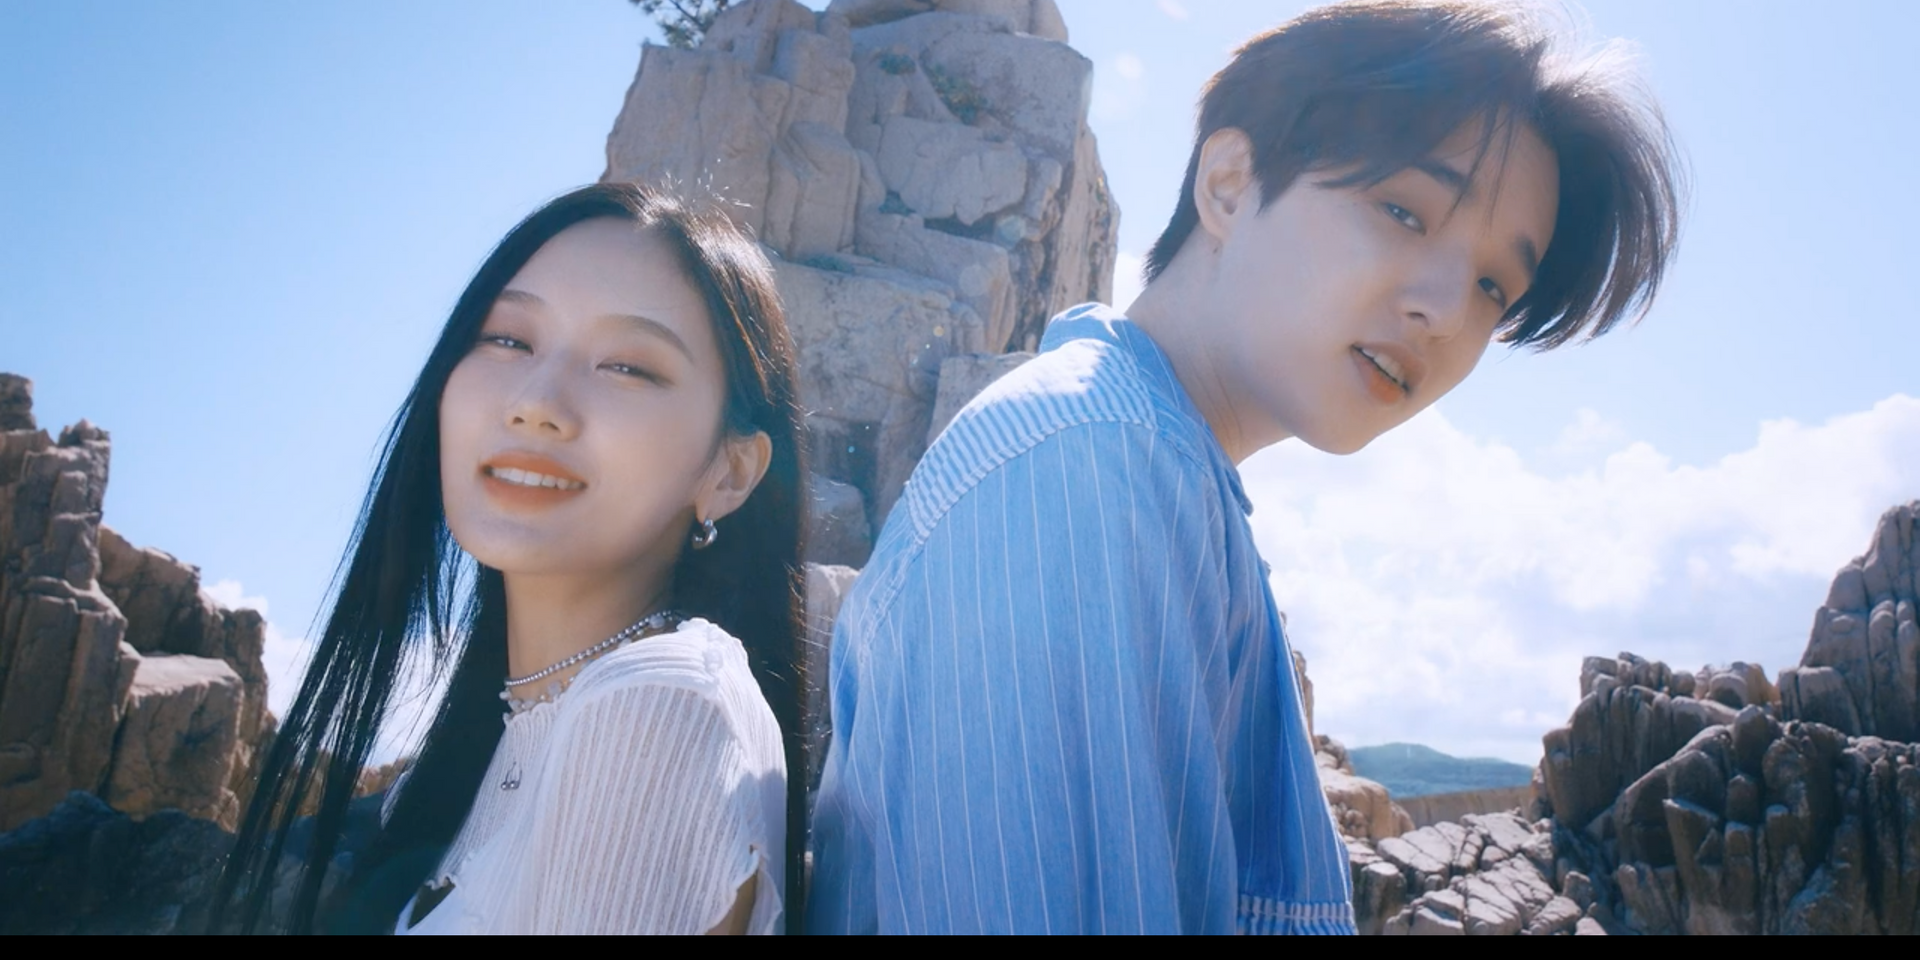 Seori and eaJ come together in new music video for 'Dive with you' – watch